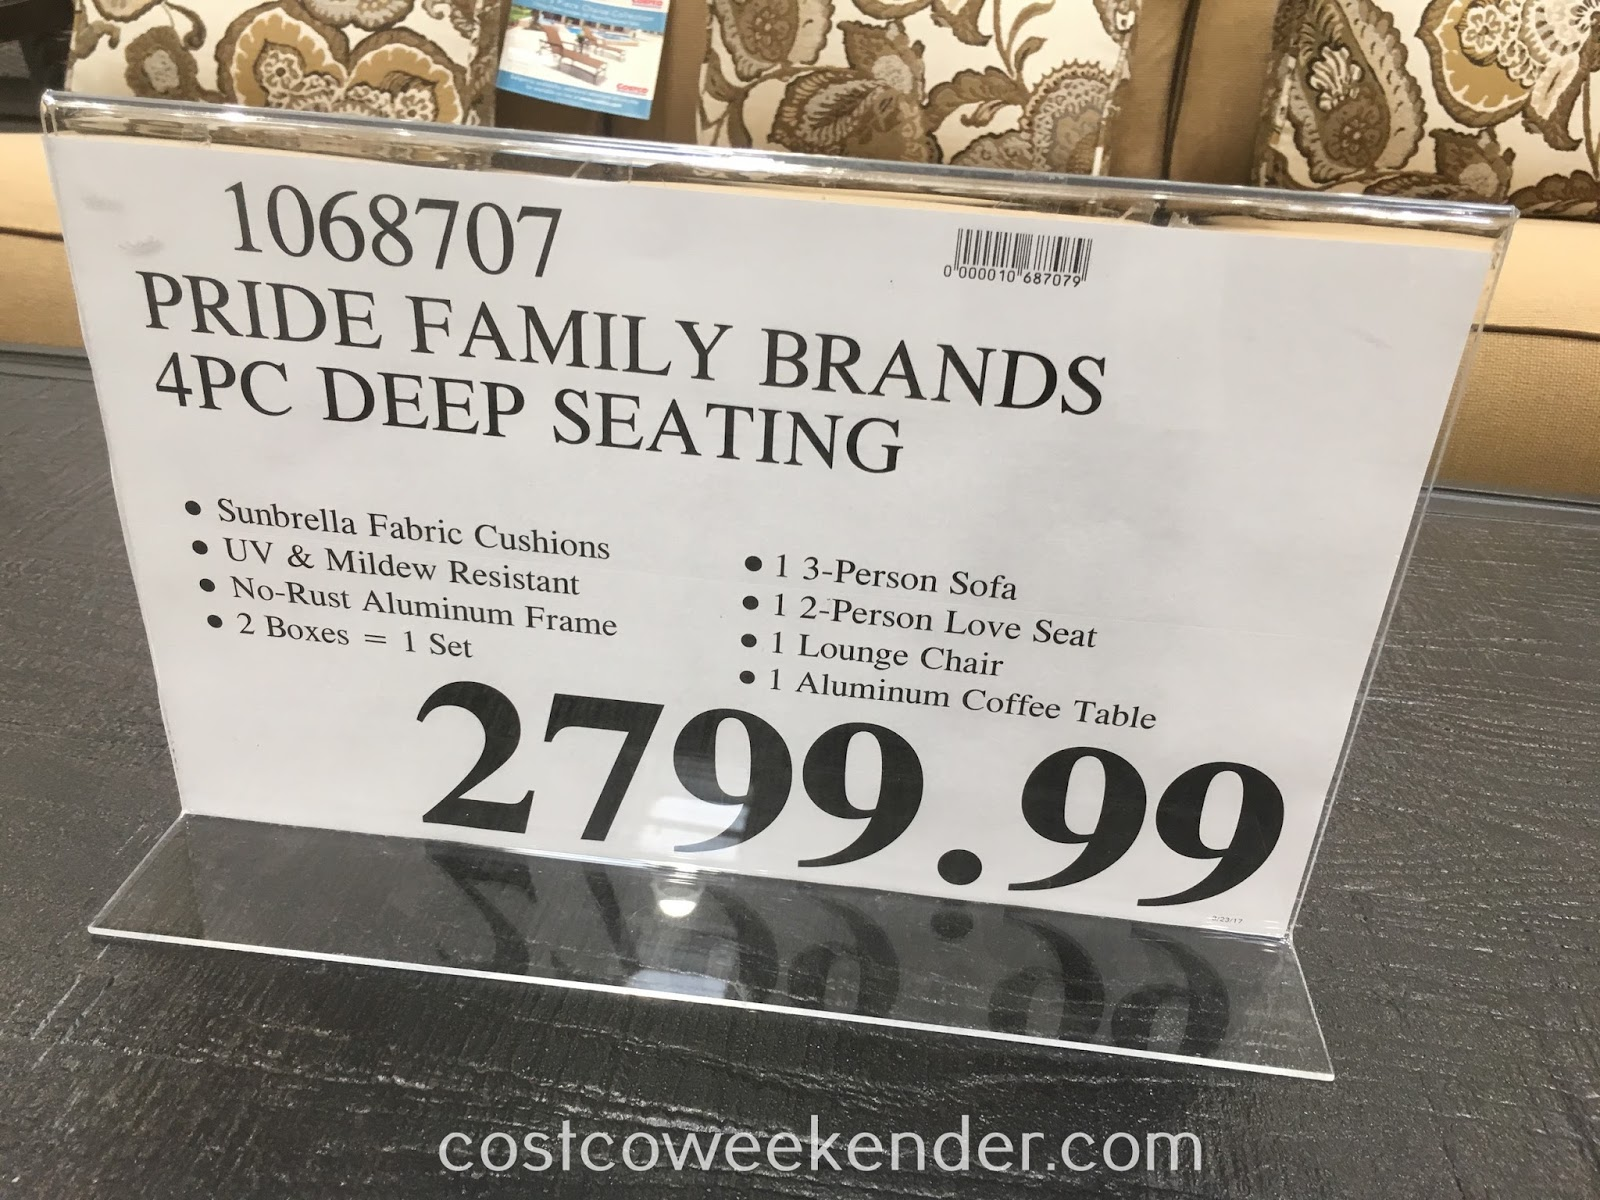 Deal for the Pride Family Brands 4 piece Deep Seating Set at Costco